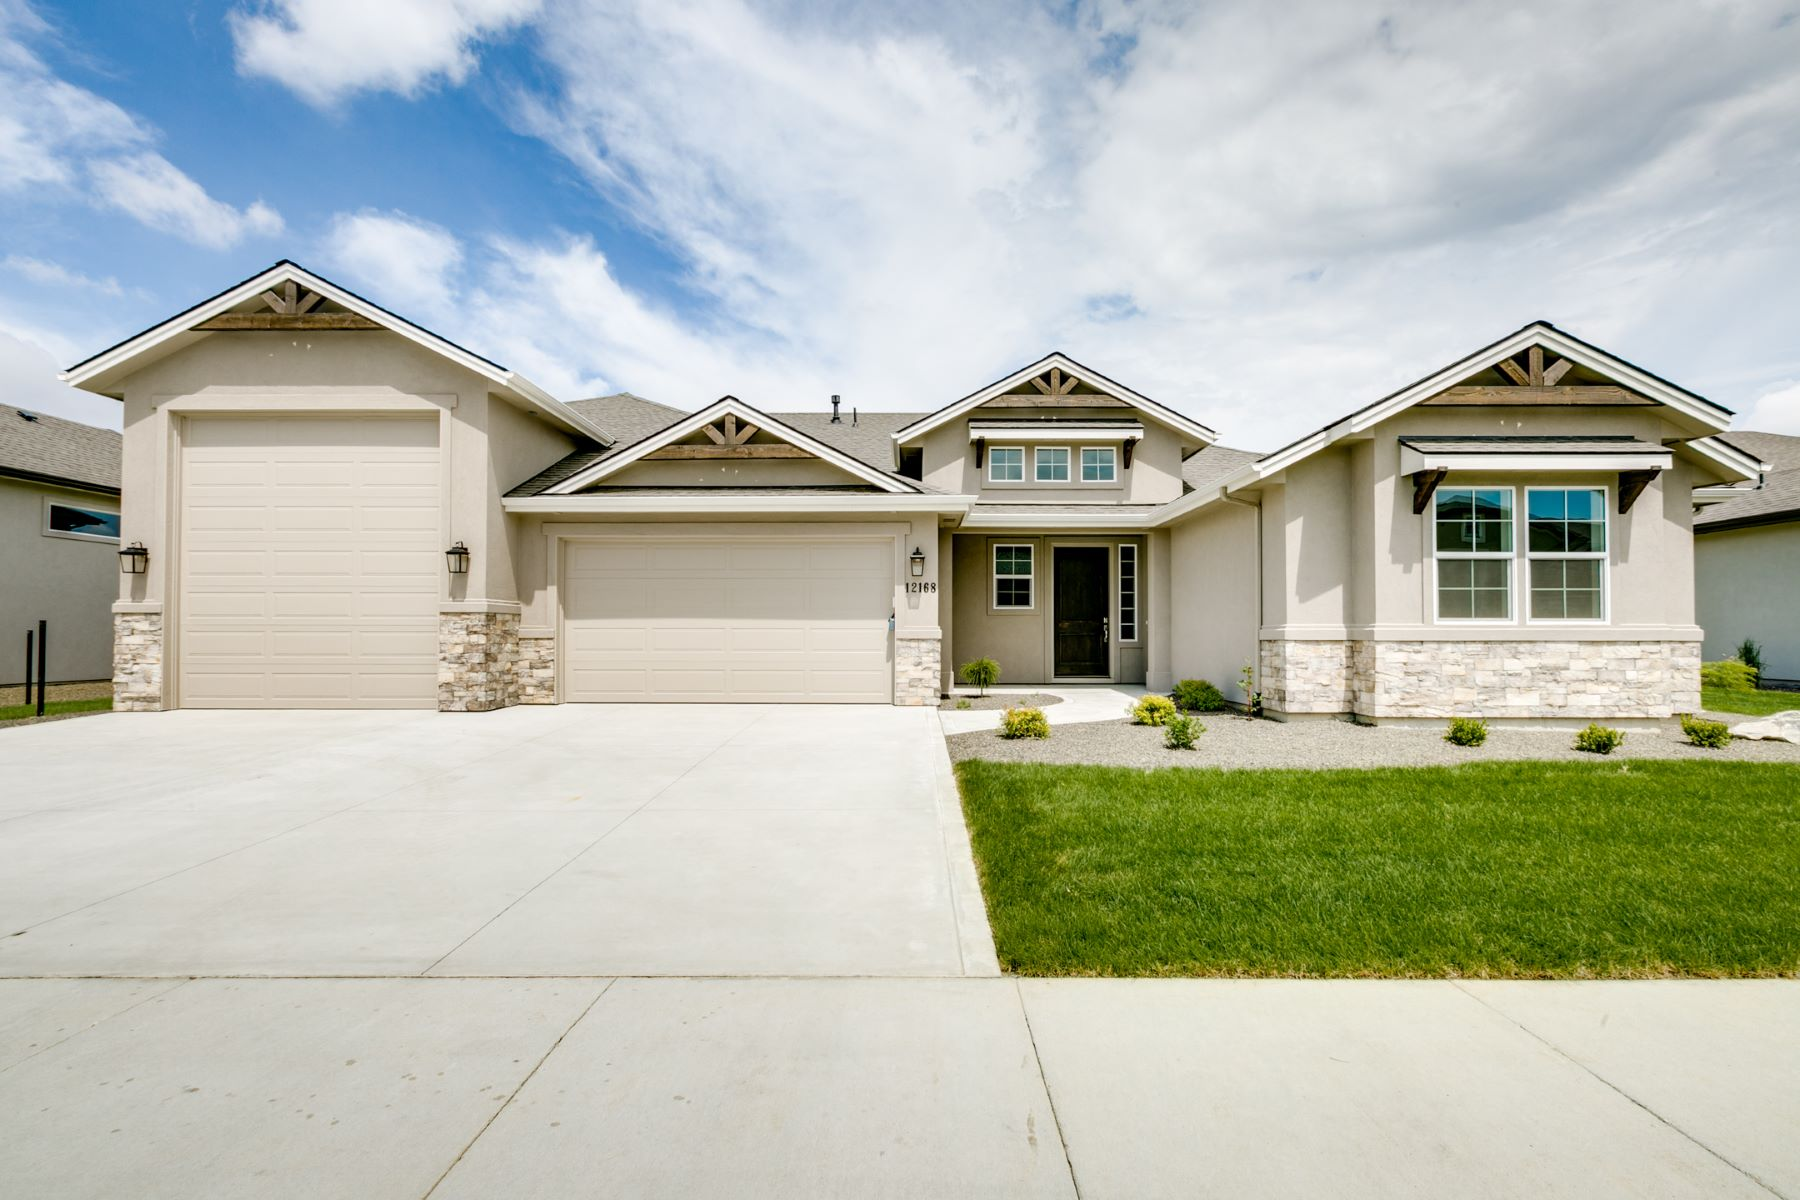 Single Family Homes for Active at 12299 Craftsman Street Star, Idaho 83669 United States